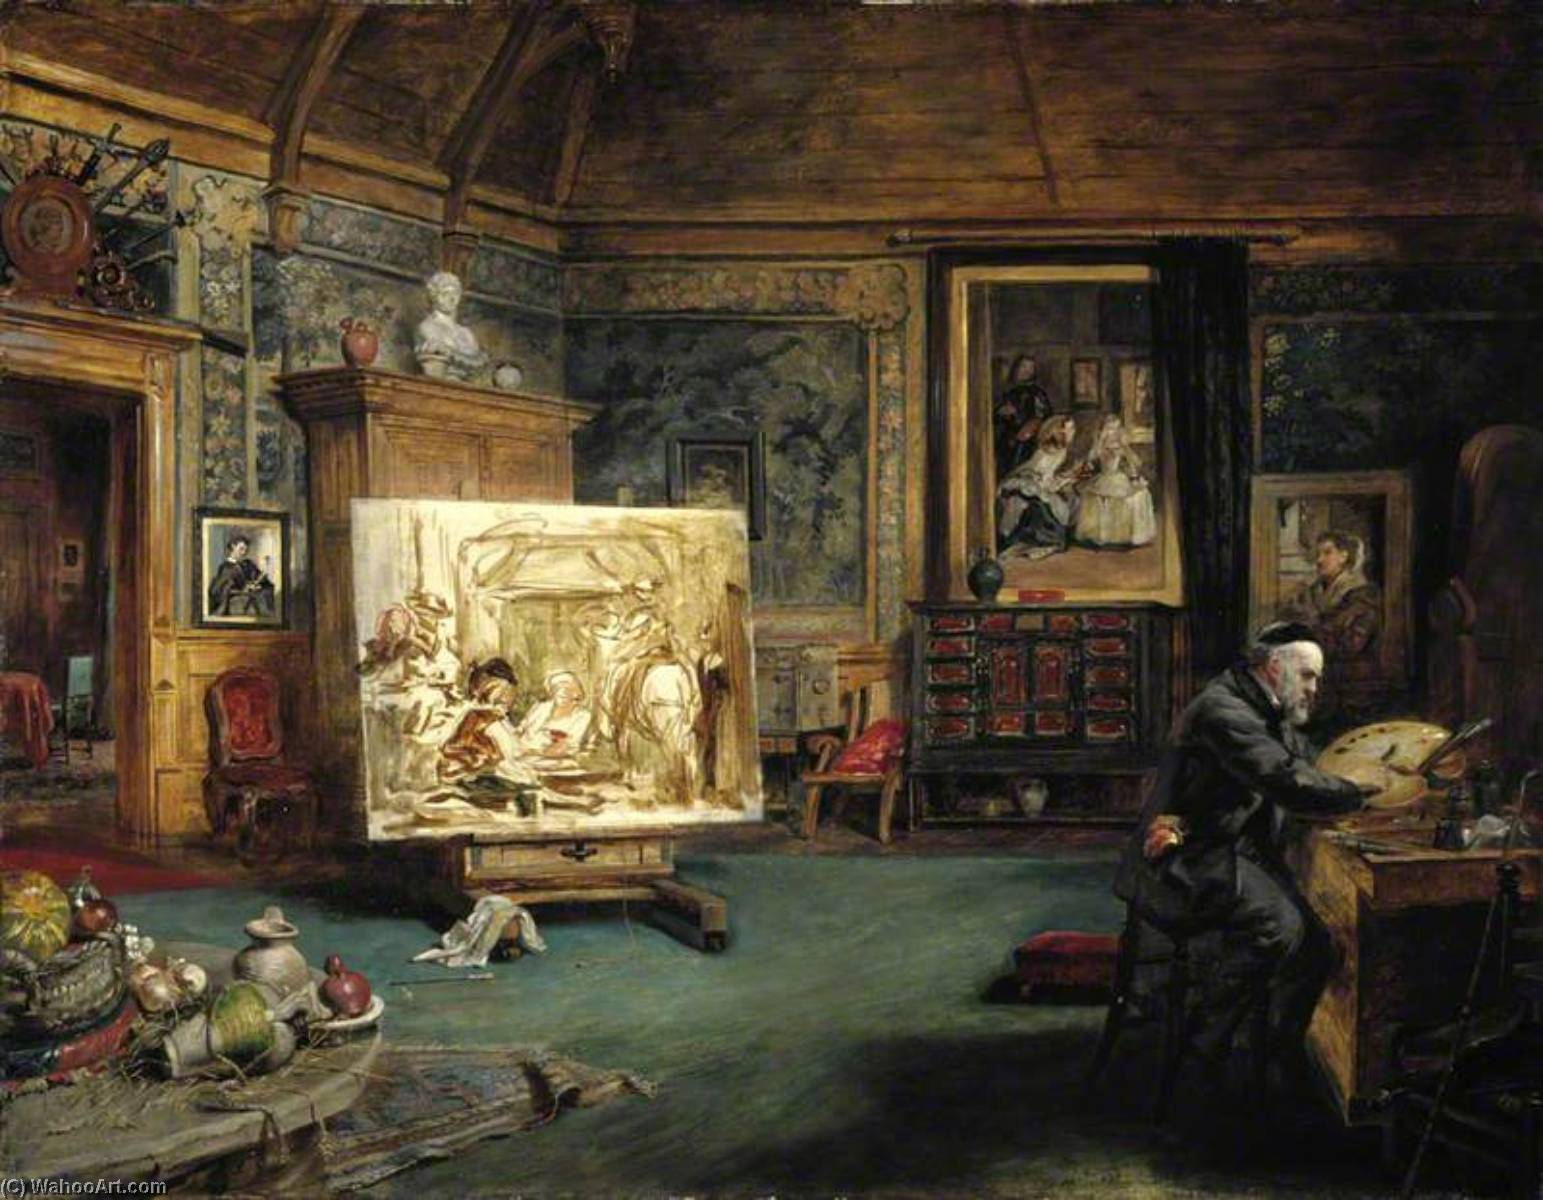 John Phillip (1817–1867), Artist, in his Studio, 1864 by John Ballantyne | Oil Painting | WahooArt.com